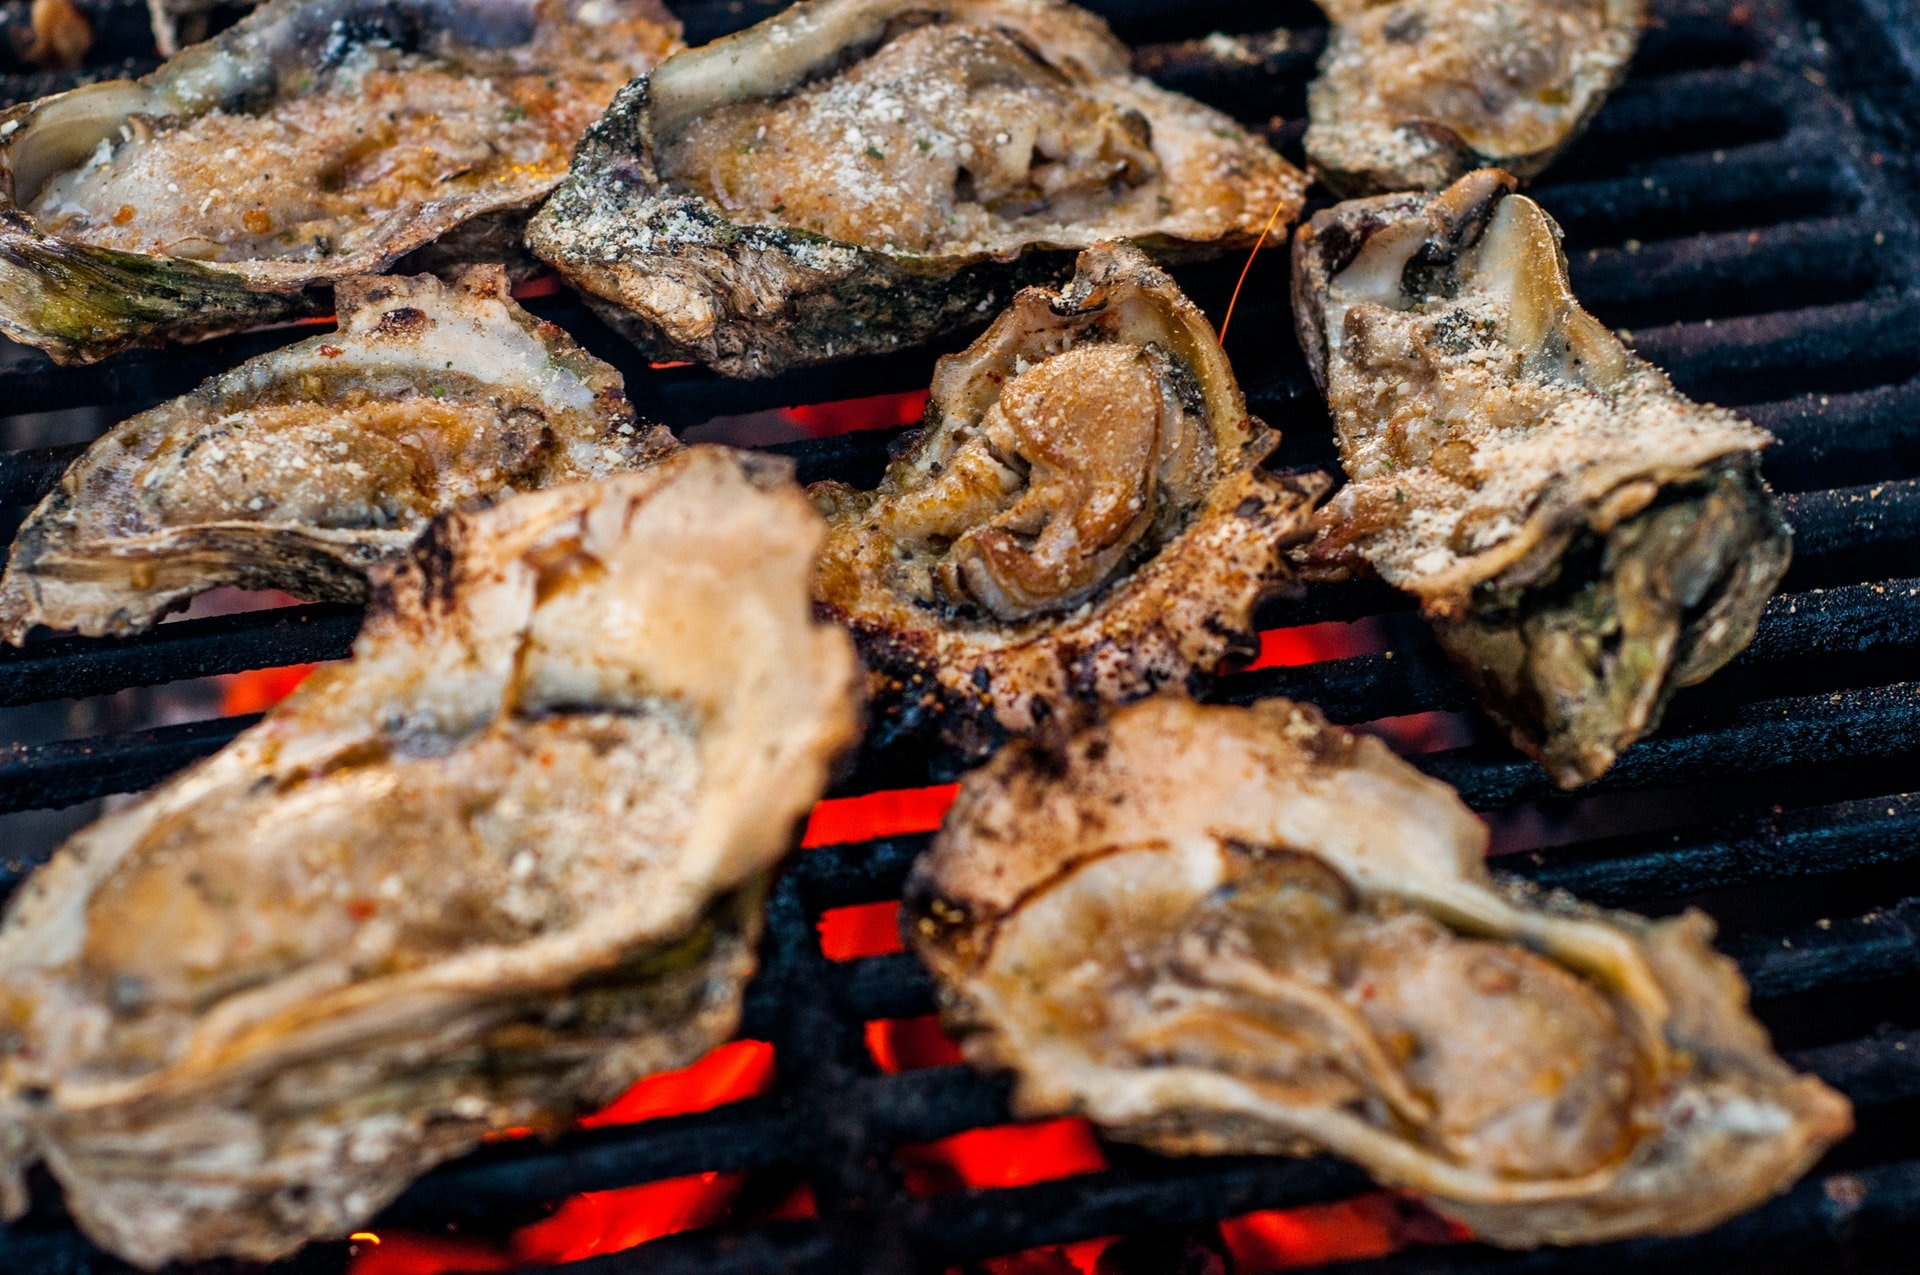 Shucked open Oysters cooking on a hot chargrill